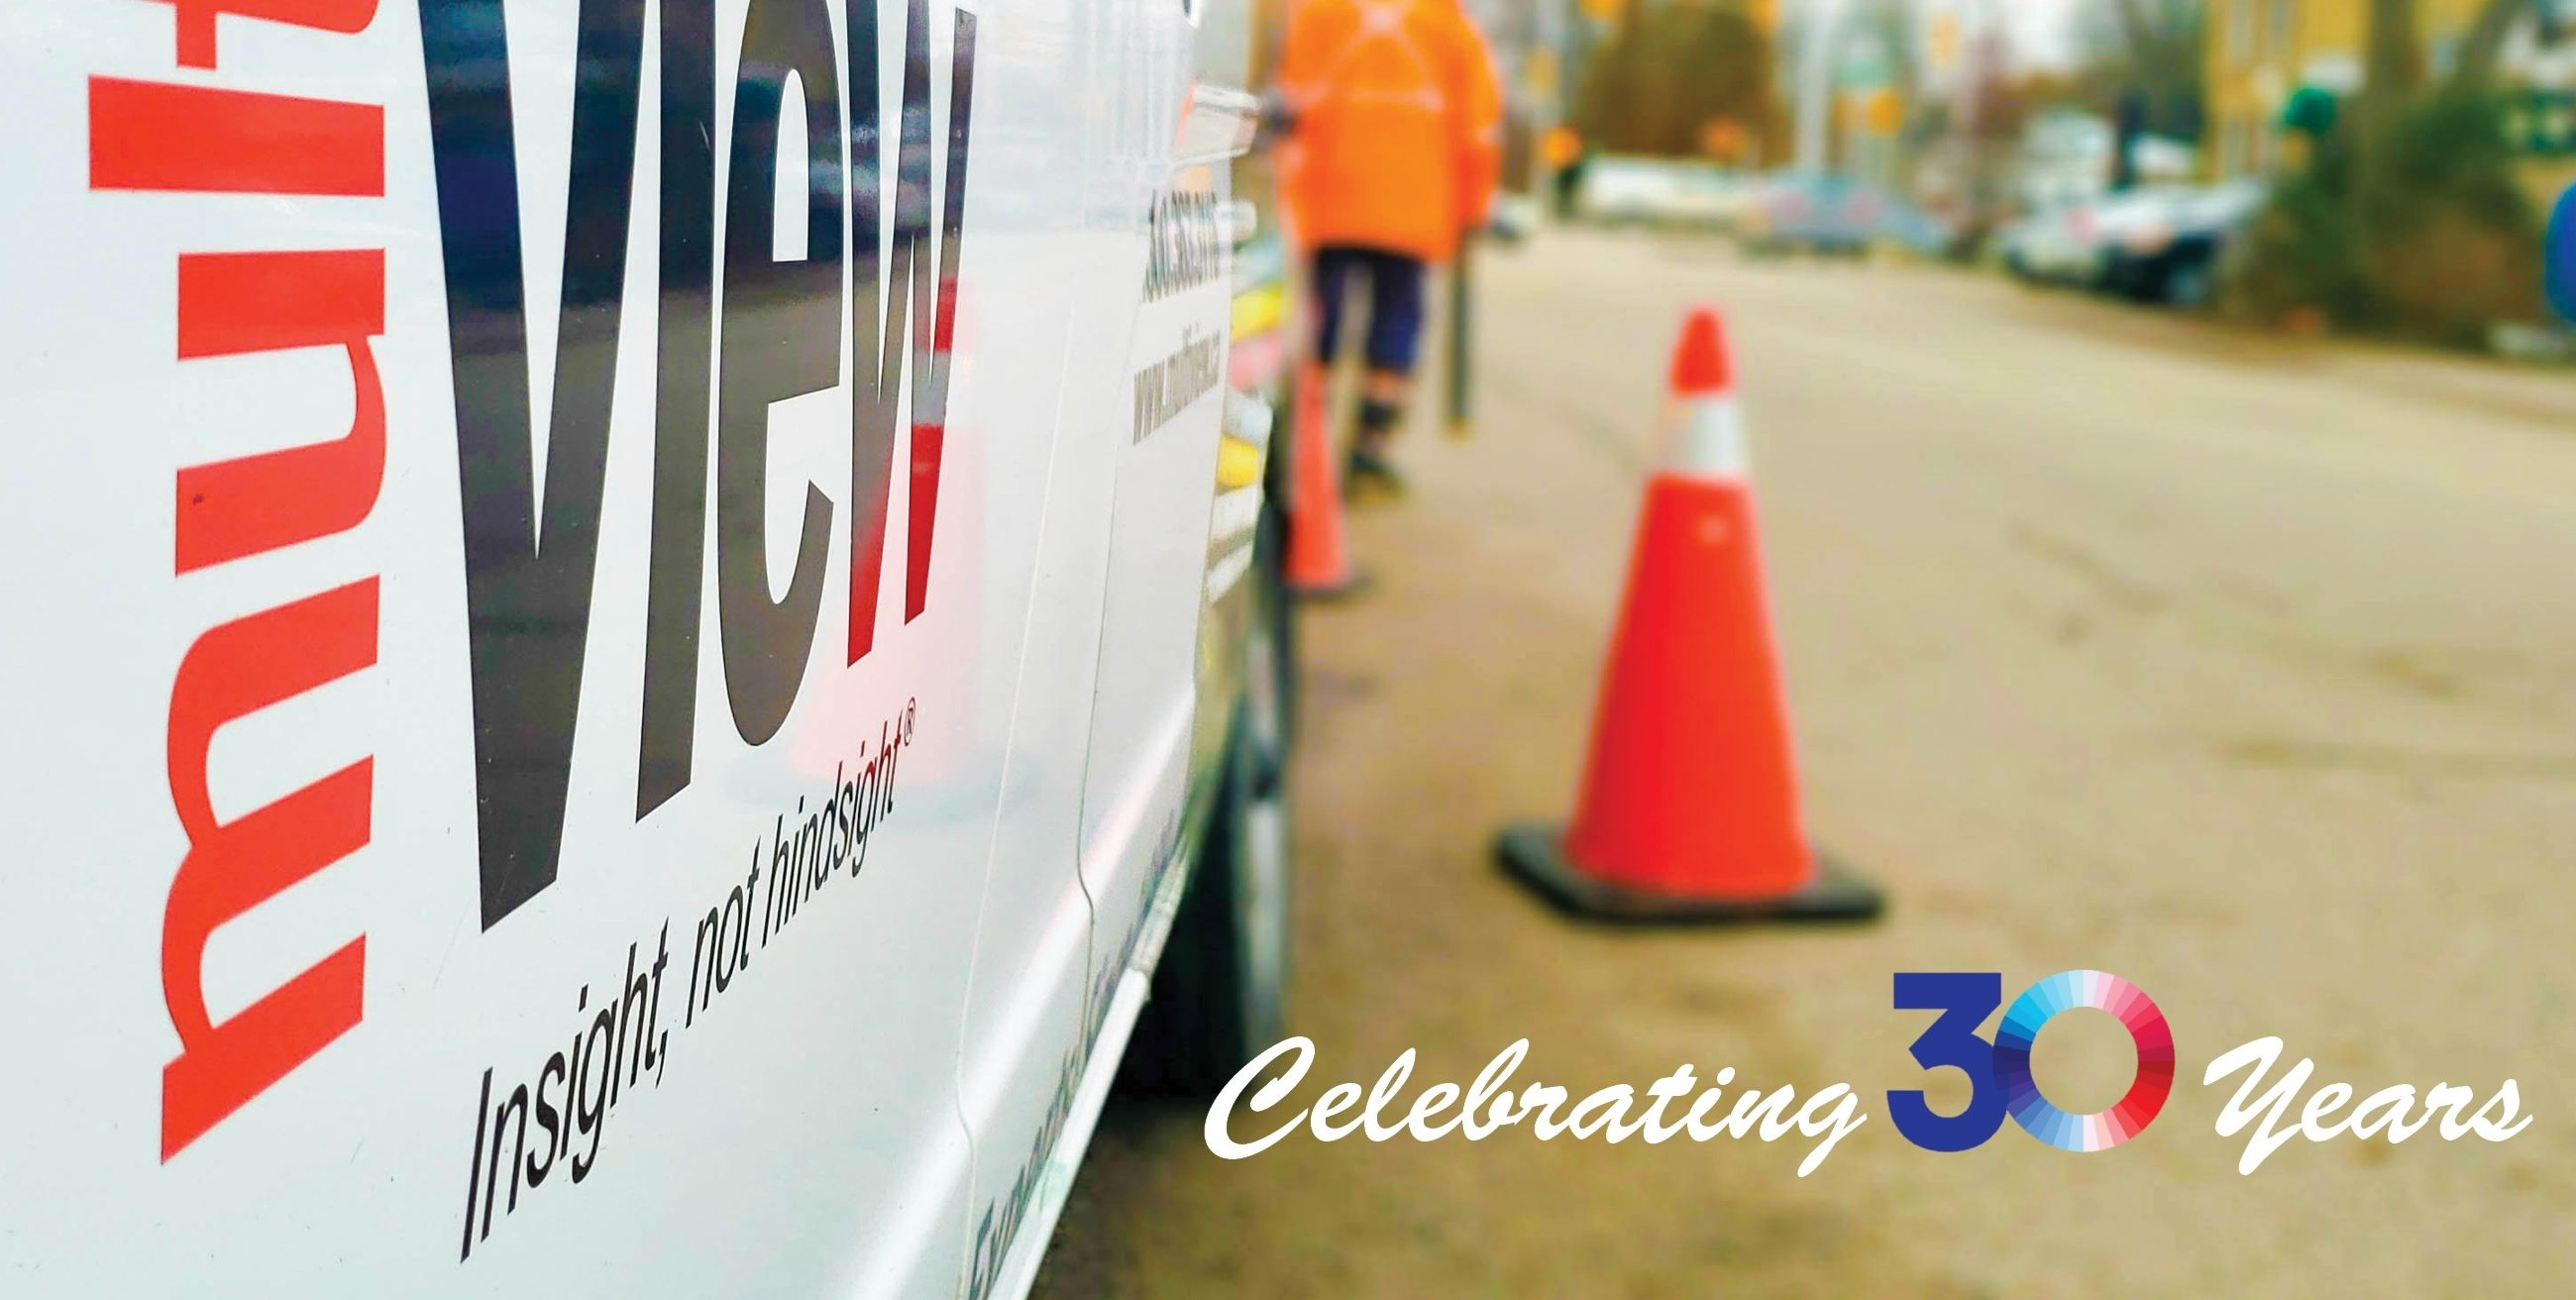 multiVIEW Locates celebrates our 30th birthday! — Thank you to our customers and the communities we serve for three decades in the utility locating & geophysics industry!